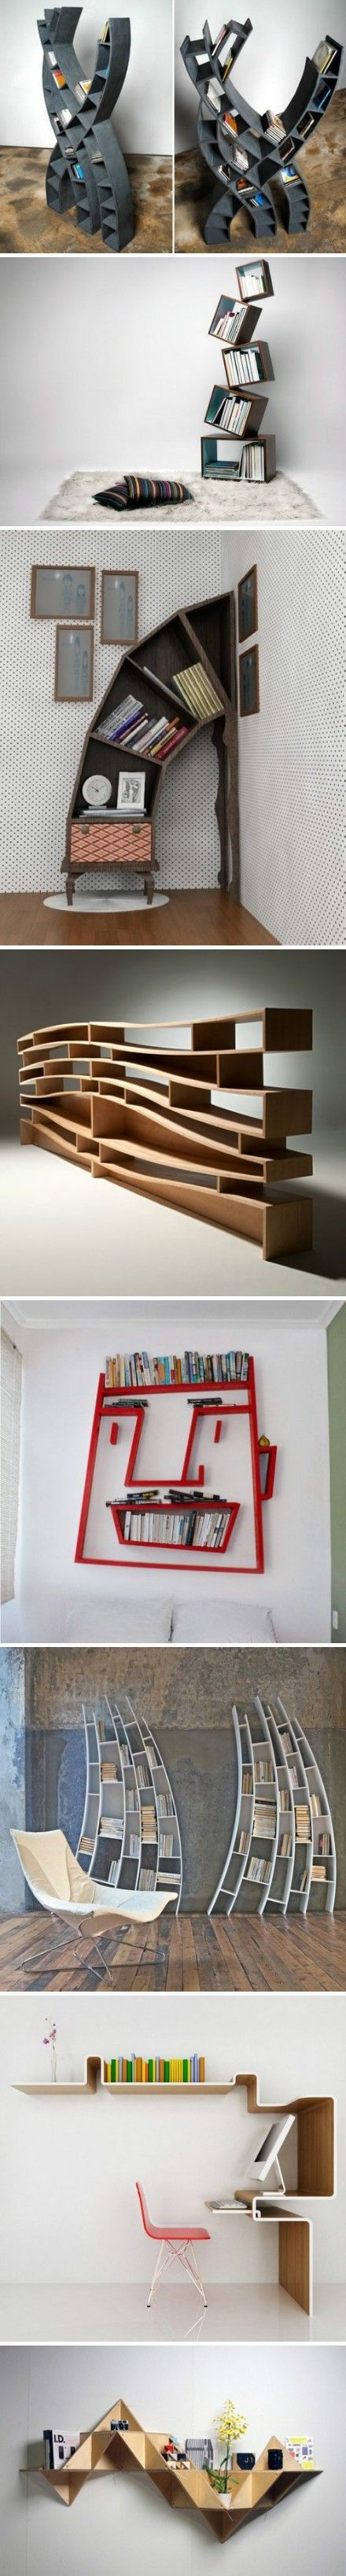 Unique DIY Book Shelves - not so certain about the face but the rest are awesome ideas